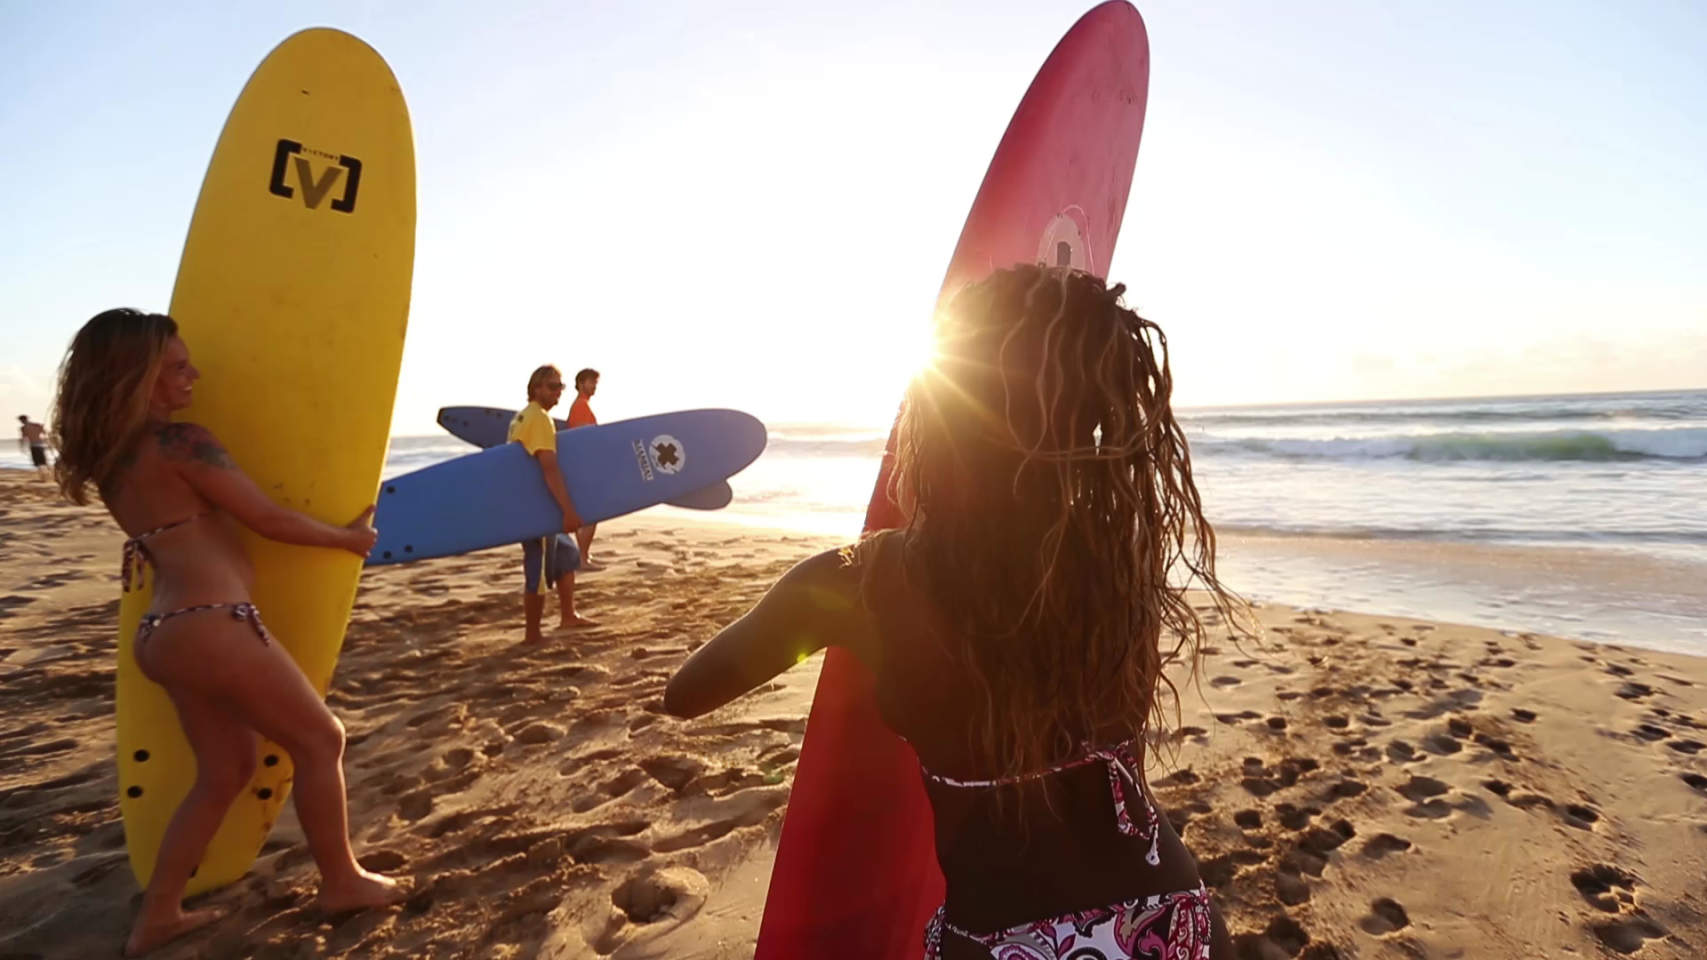 Surf Blog Best Places To Spend New Years Eve Surfing - The 7 best beaches for winter surfing